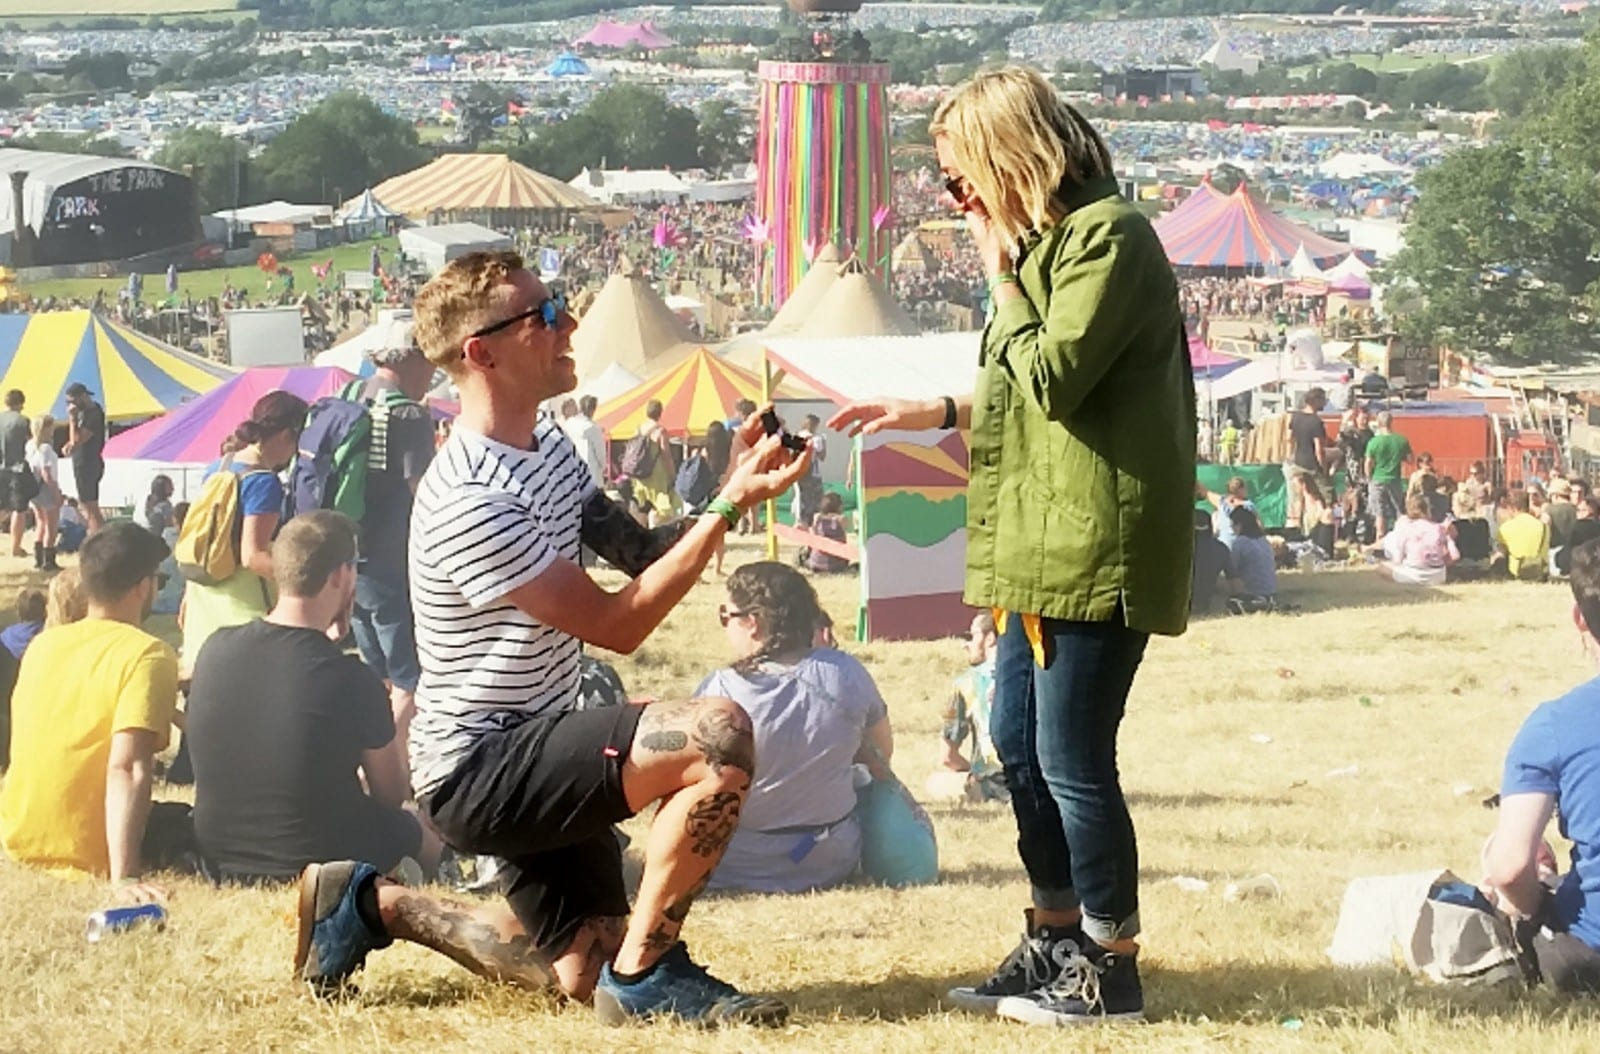 Couple Get Glastonbury Tickets For 50 Friends As They Tie The Knot At The Festival – Two Years After Getting Engaged There